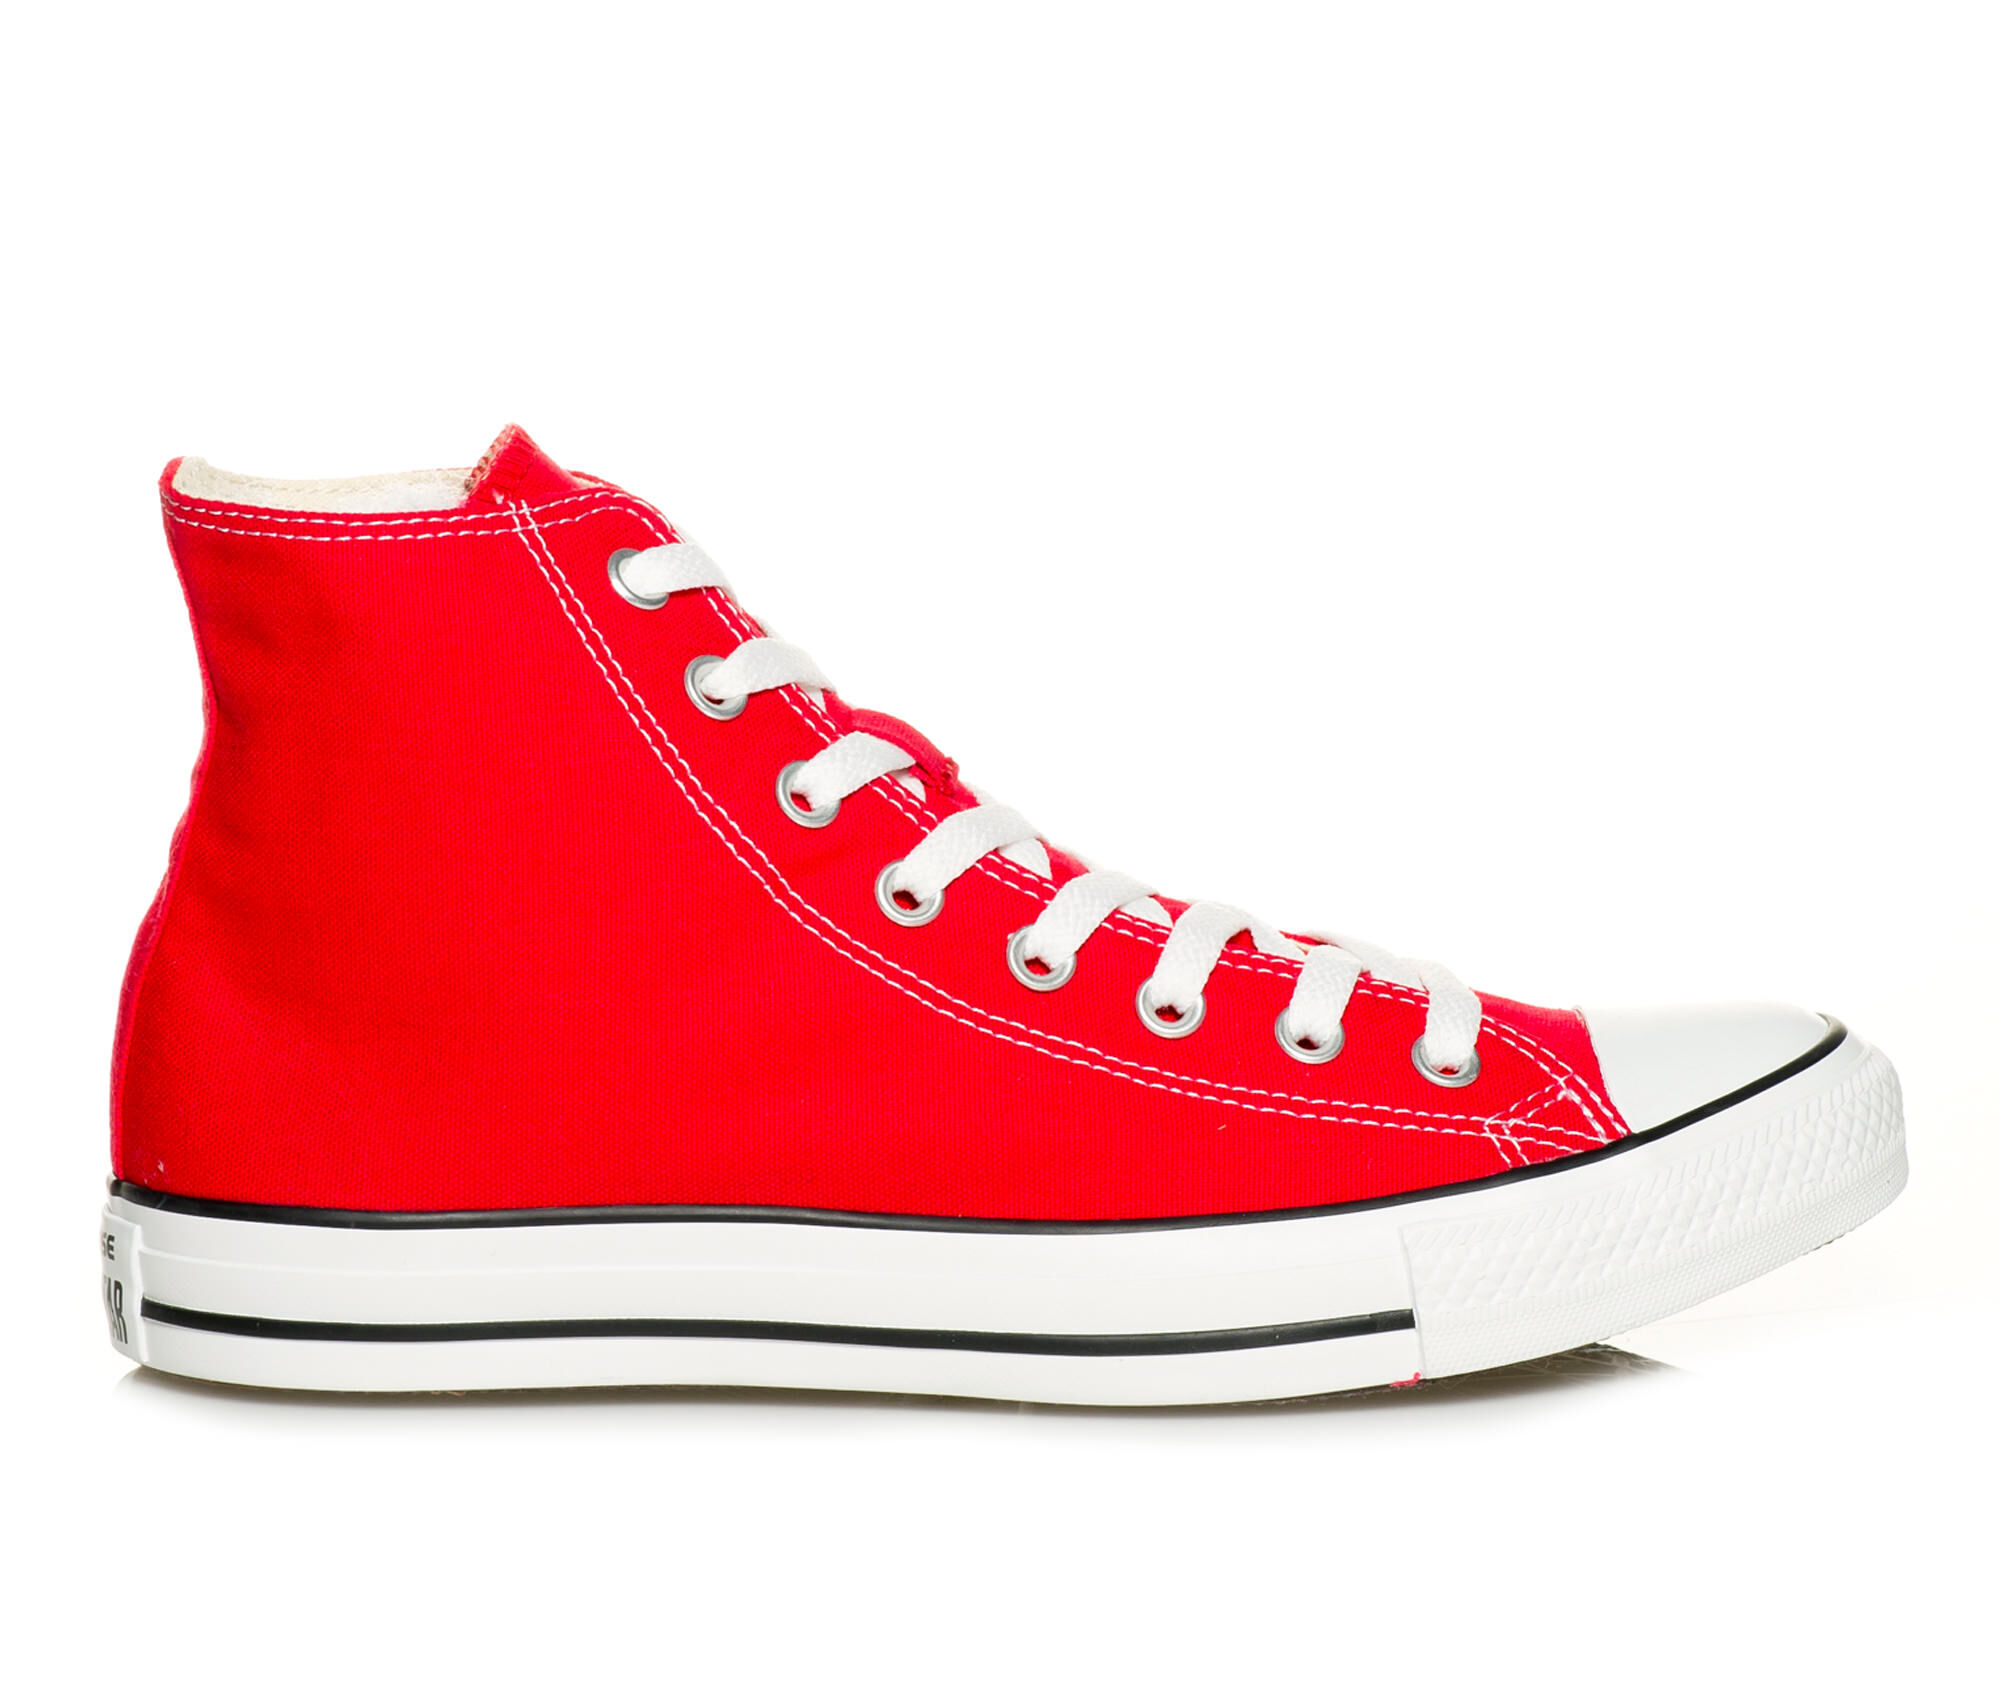 Converse Chuck Taylor High Top Sneaker | Best Red Sneakers